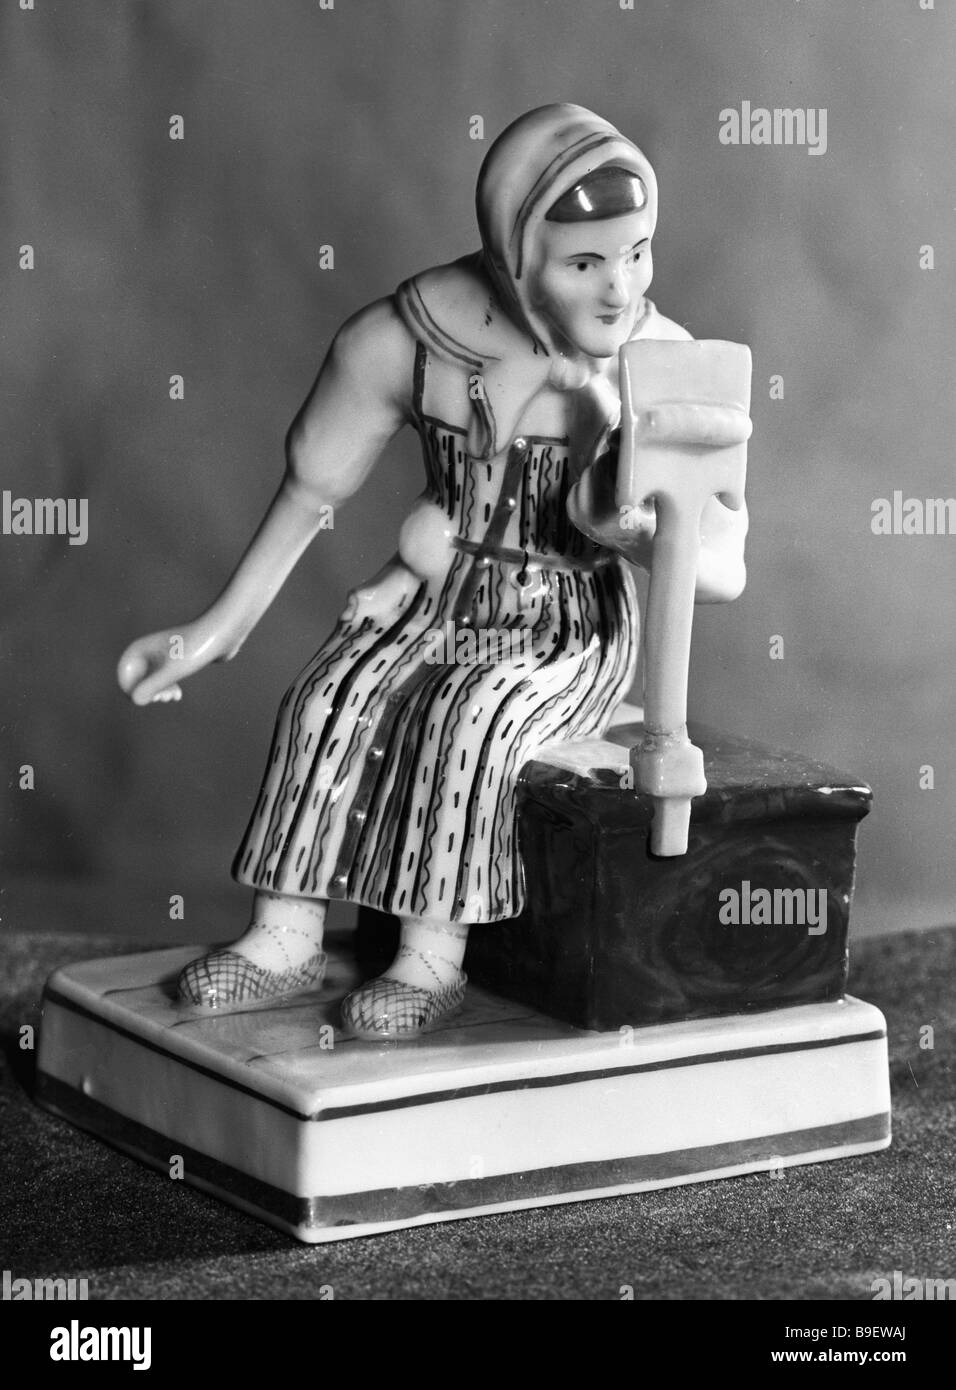 Porcelain statuette The Spinner from the Moscow Historical Museum - Stock Image